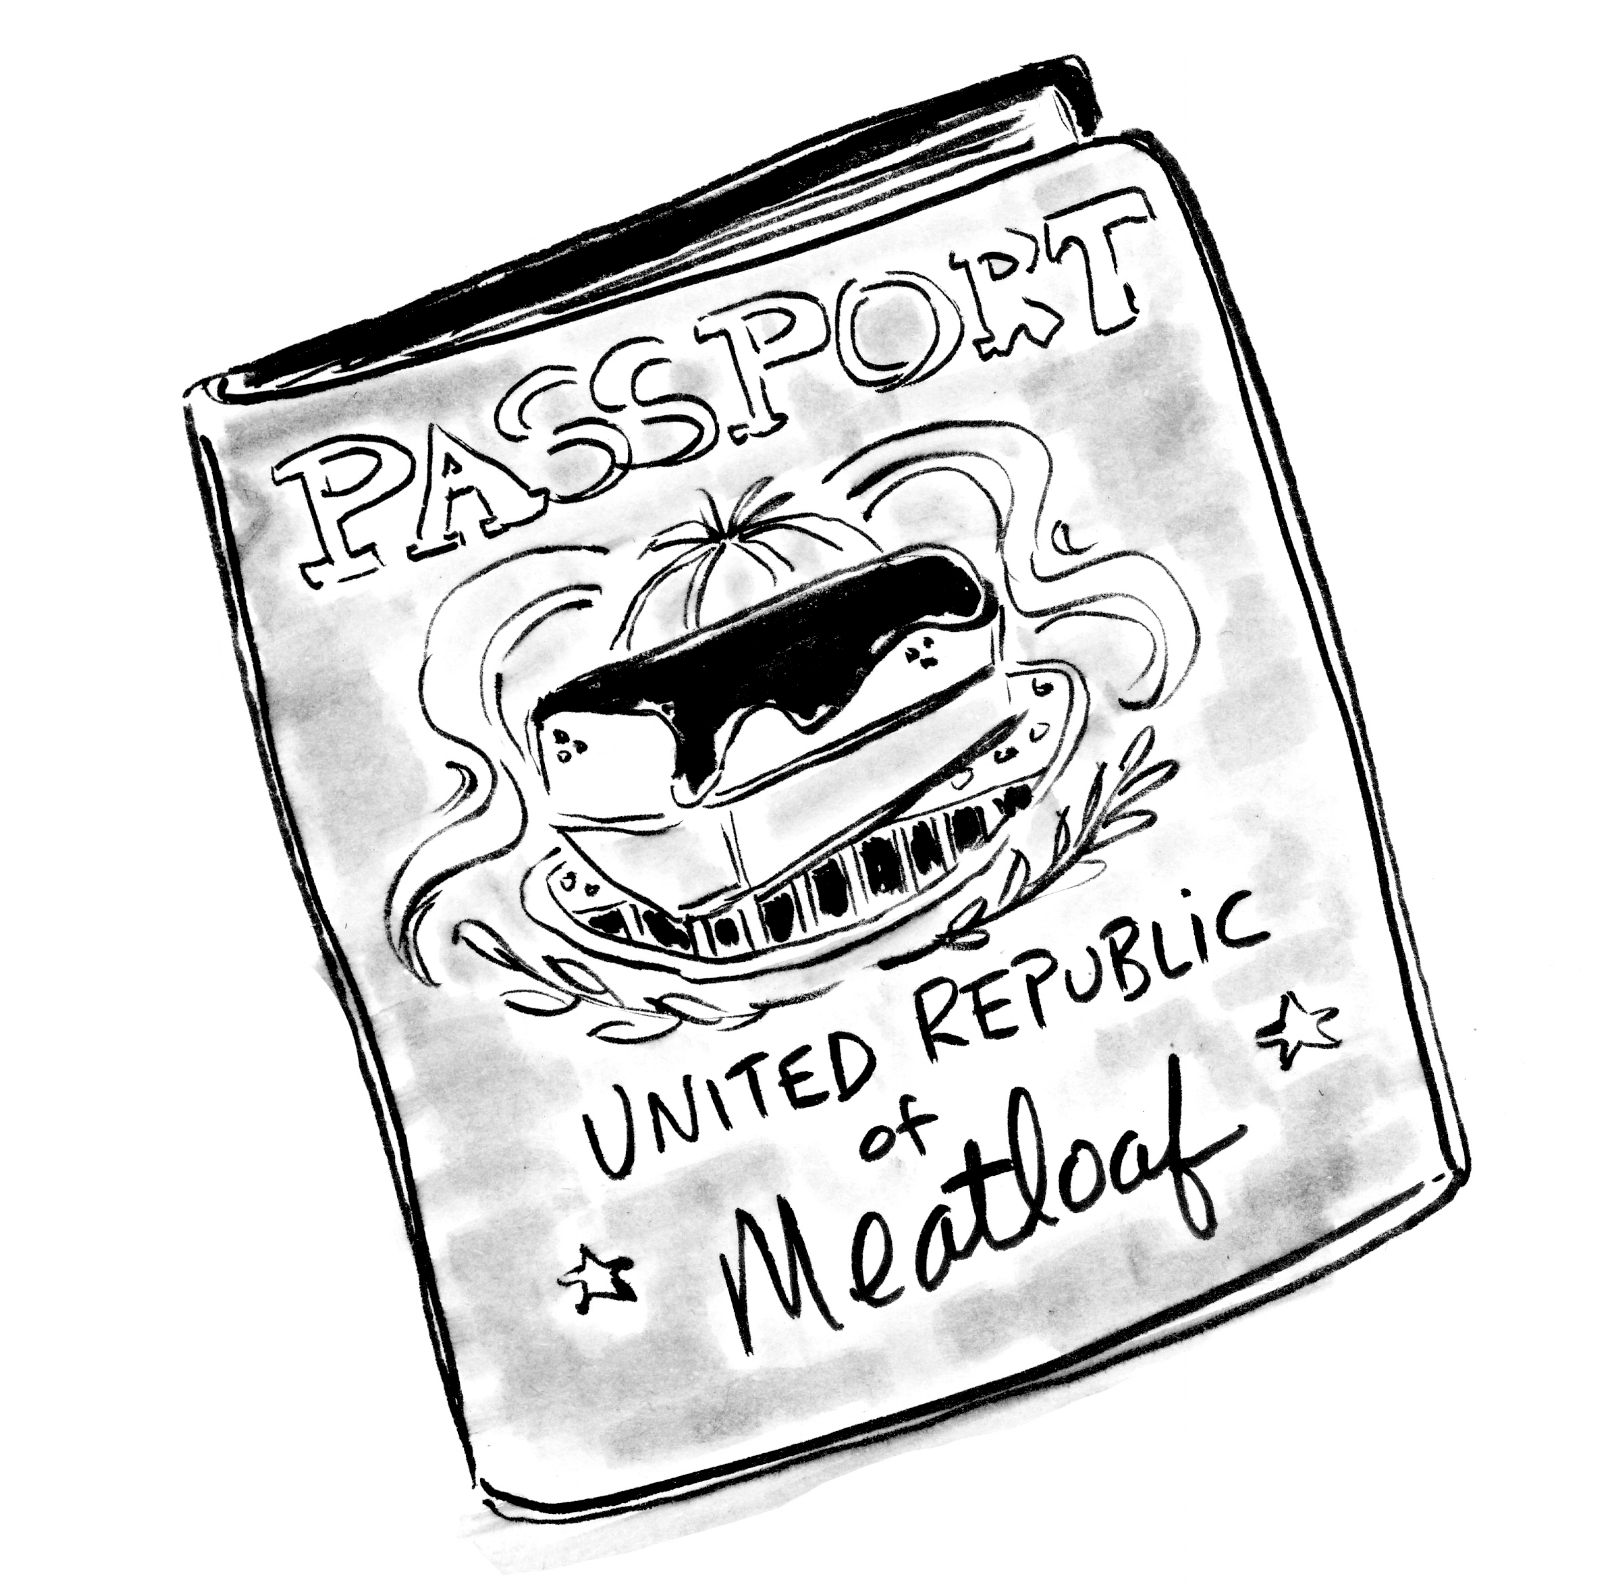 Ch2_Dialogue_Meatloaf_Passport.jpg